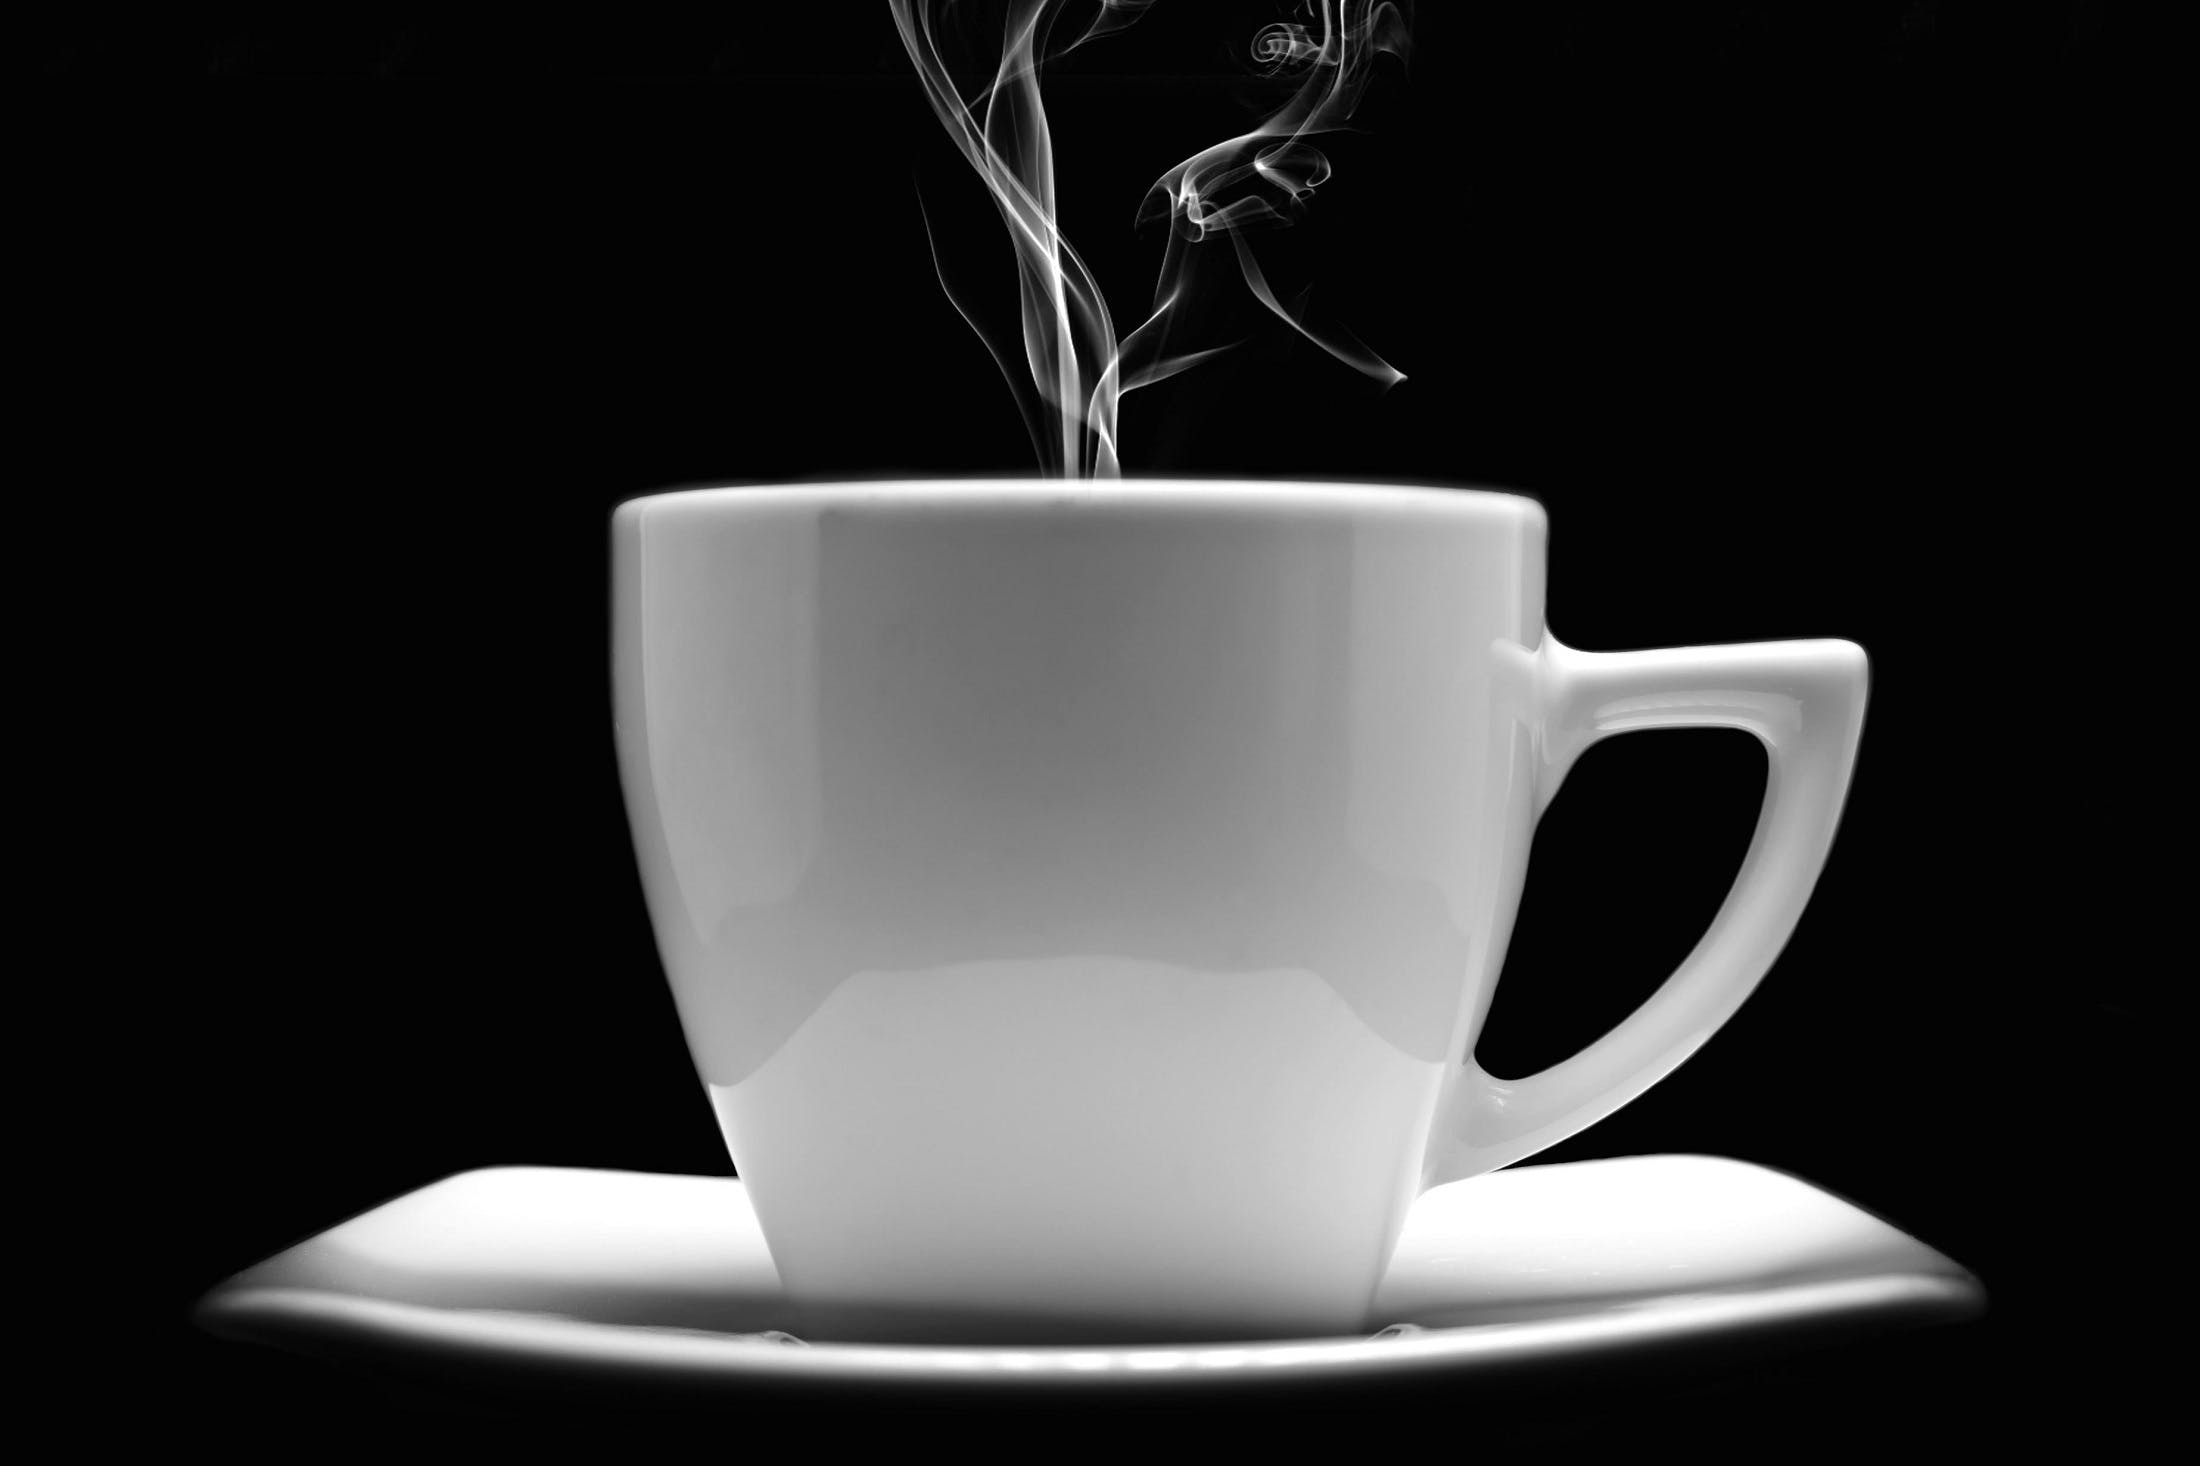 Gratis stockfoto met cappuccino, close-up, concentratie, damp